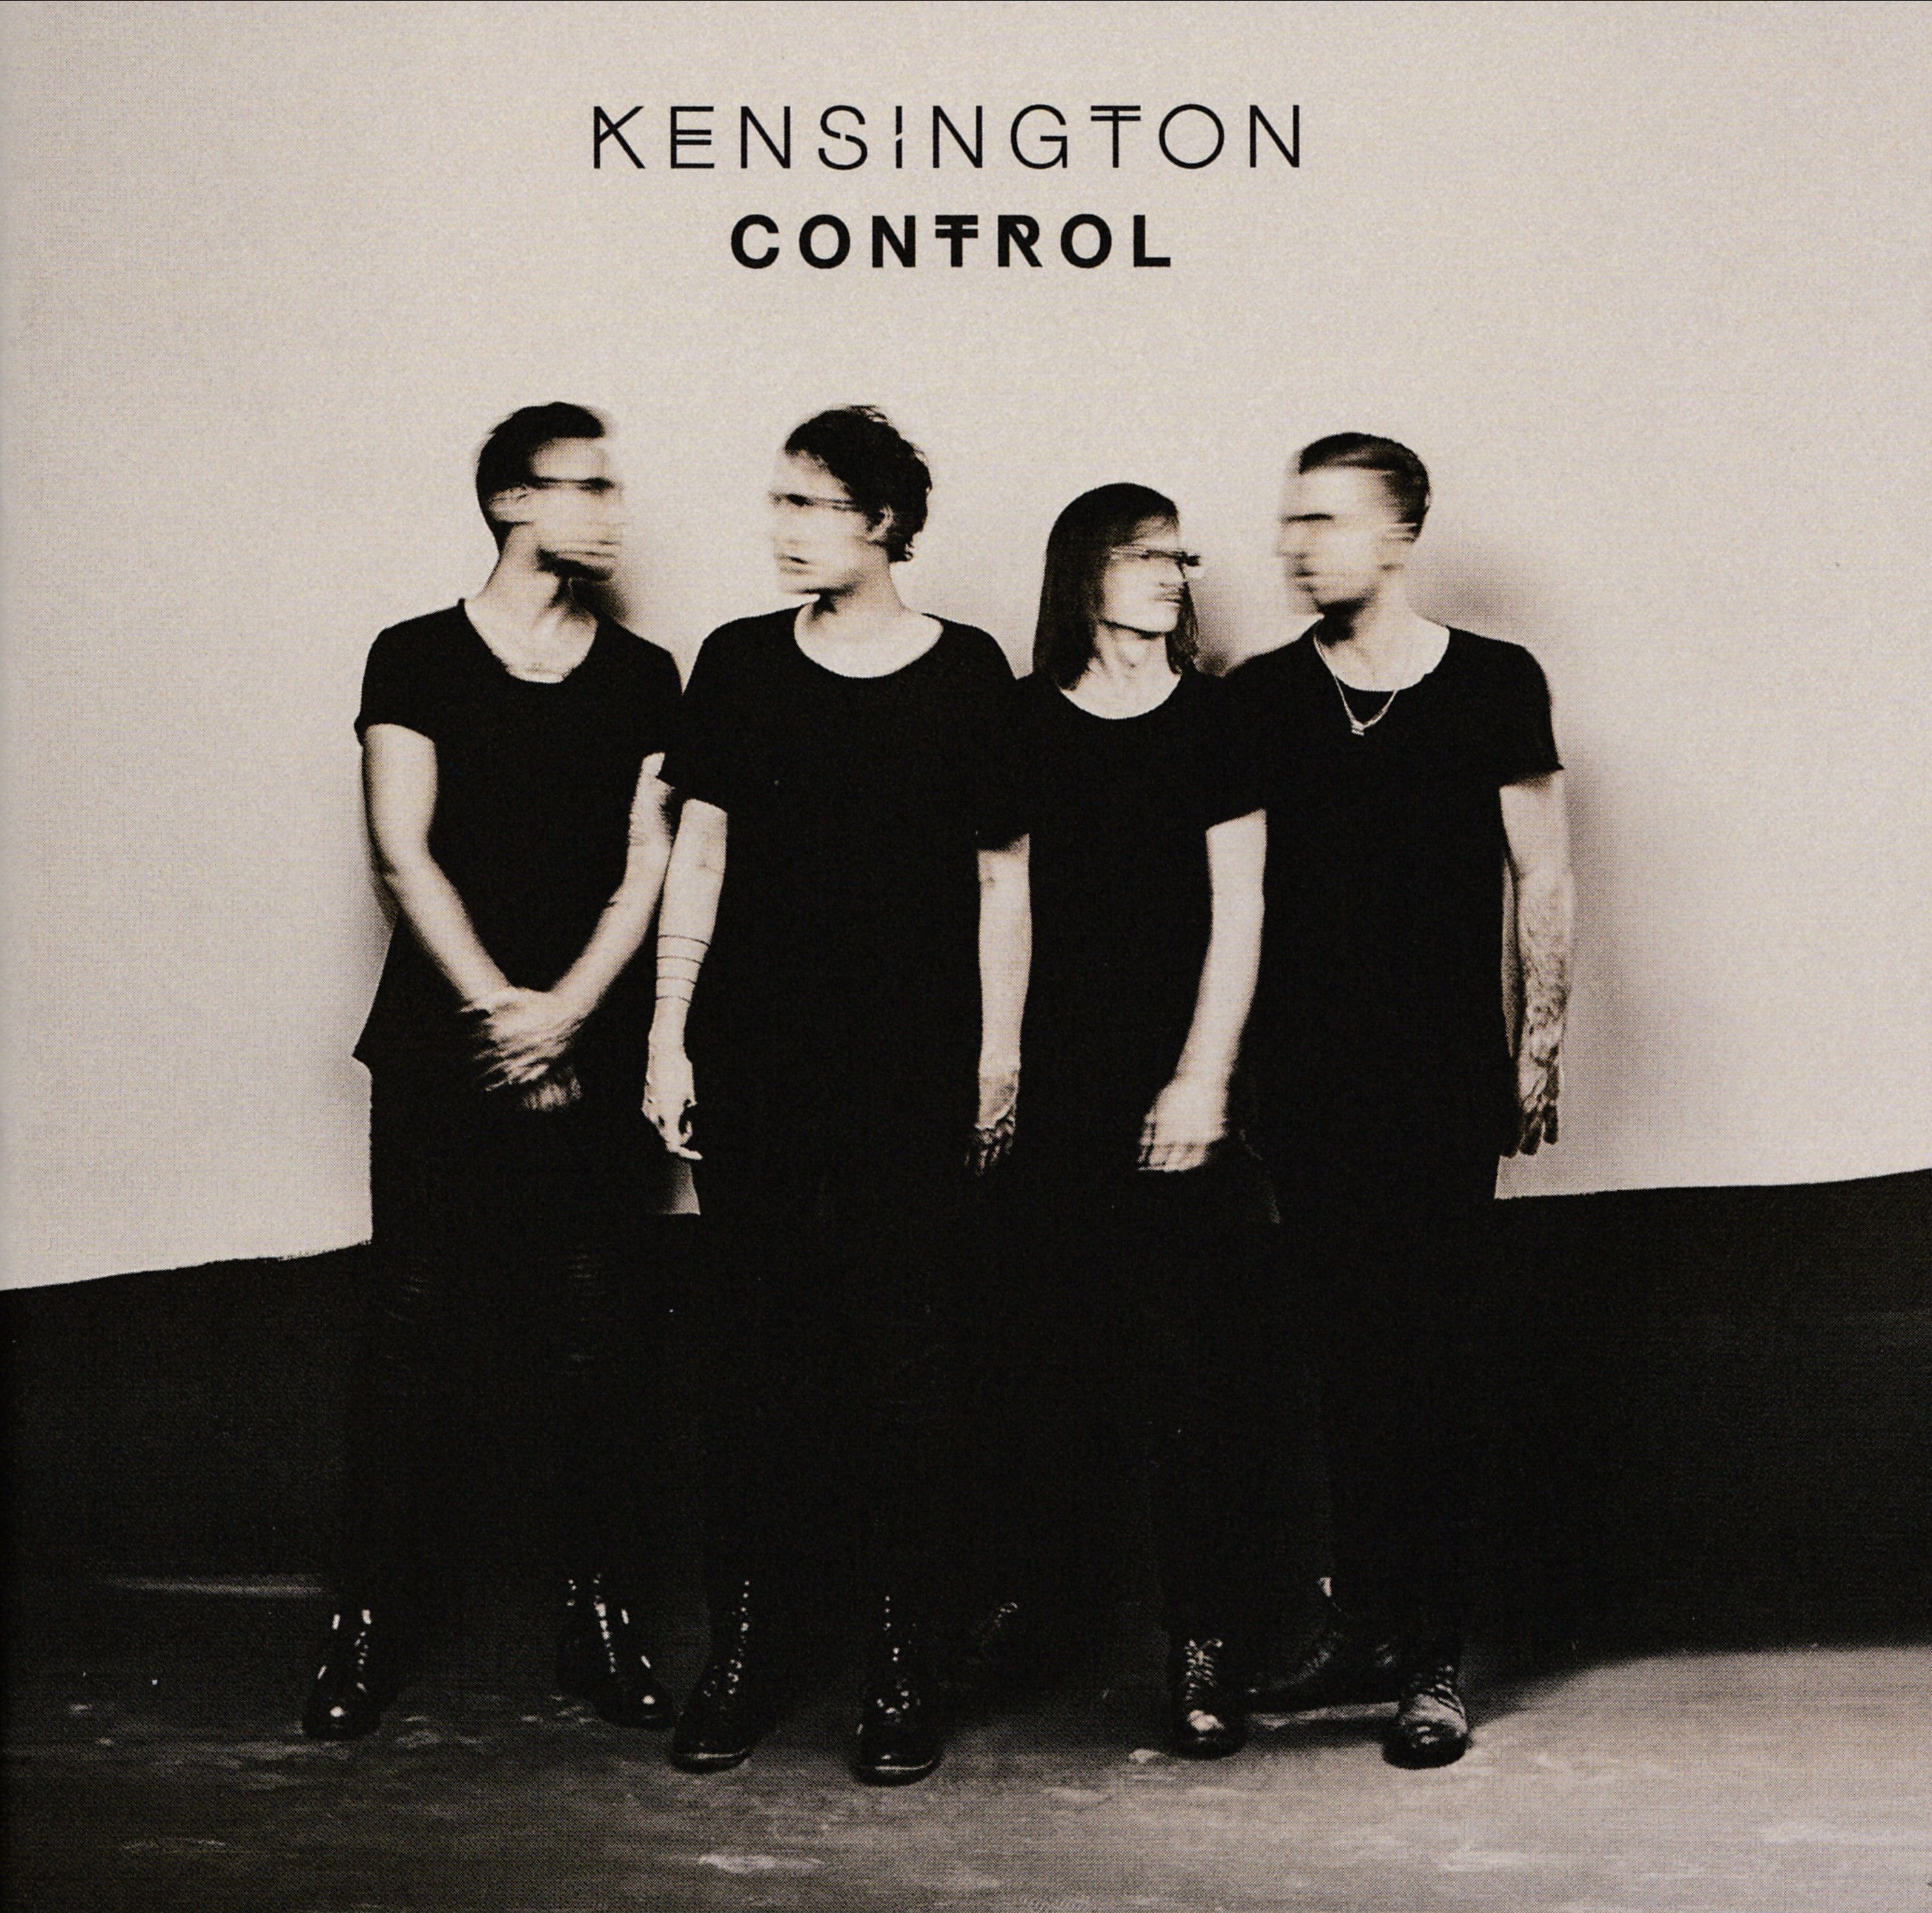 Kensington - Control album cover